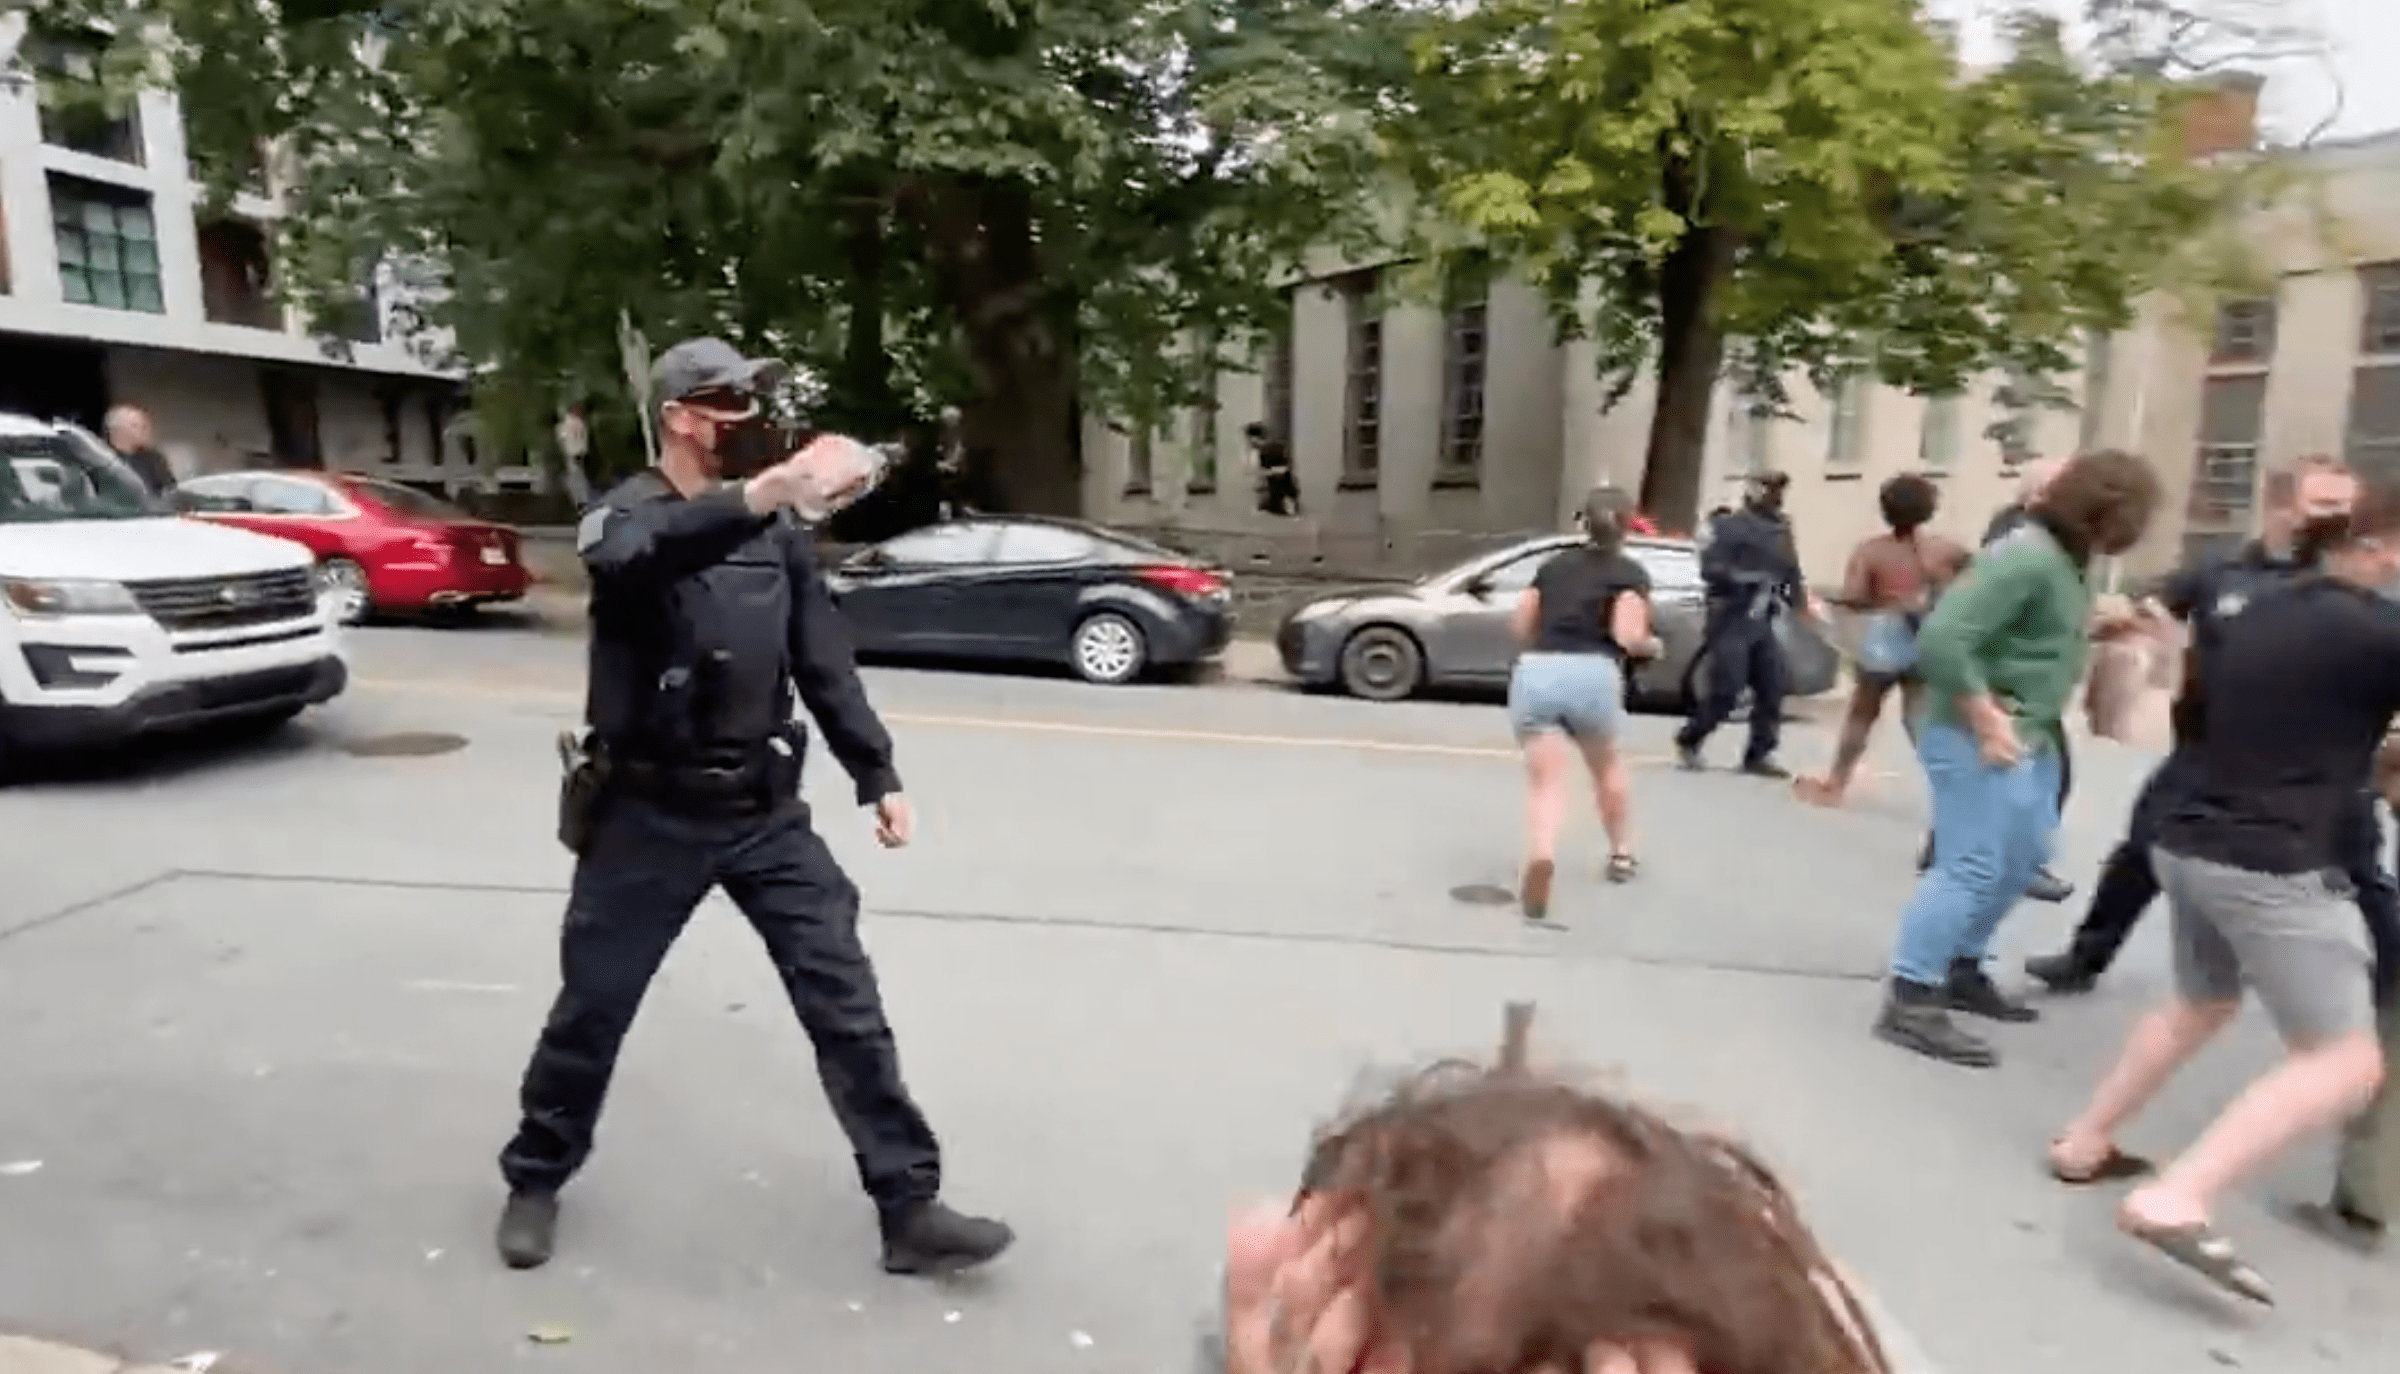 A police officer can be seen walking toward protestors with his hand raised | Photo: Twitter/zwoodford